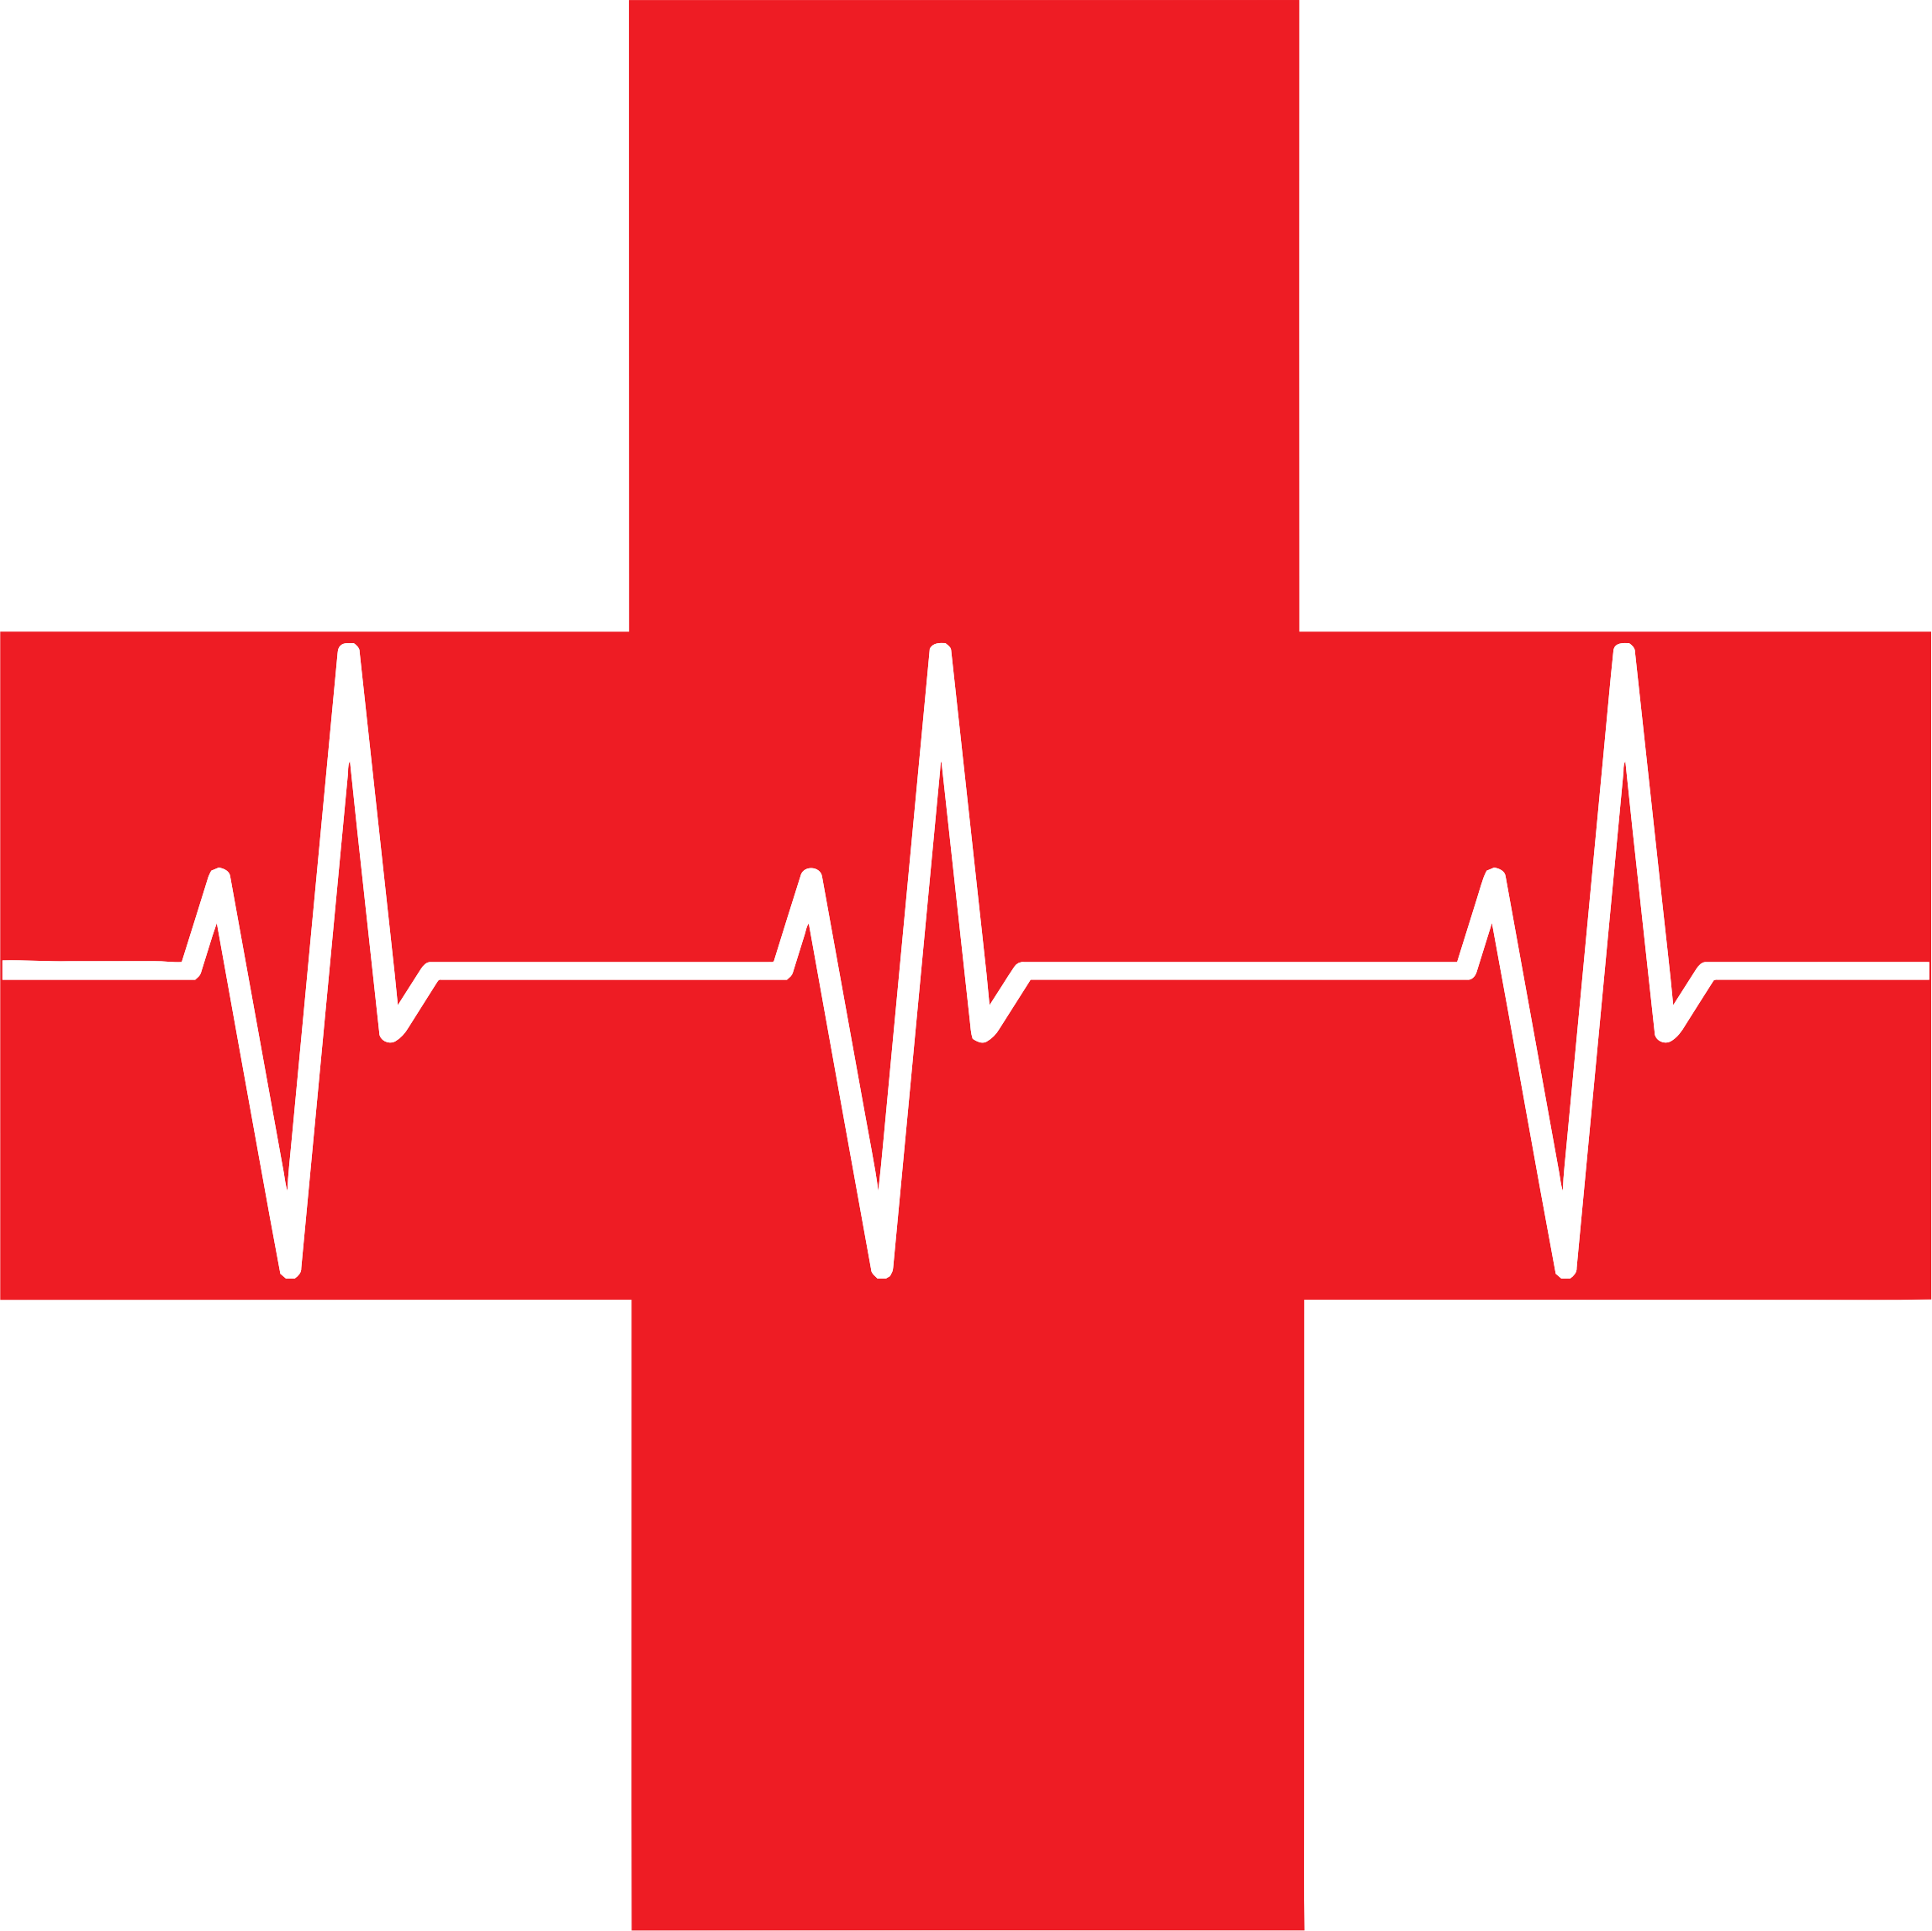 Health clipart first aid cross. Red icon big image